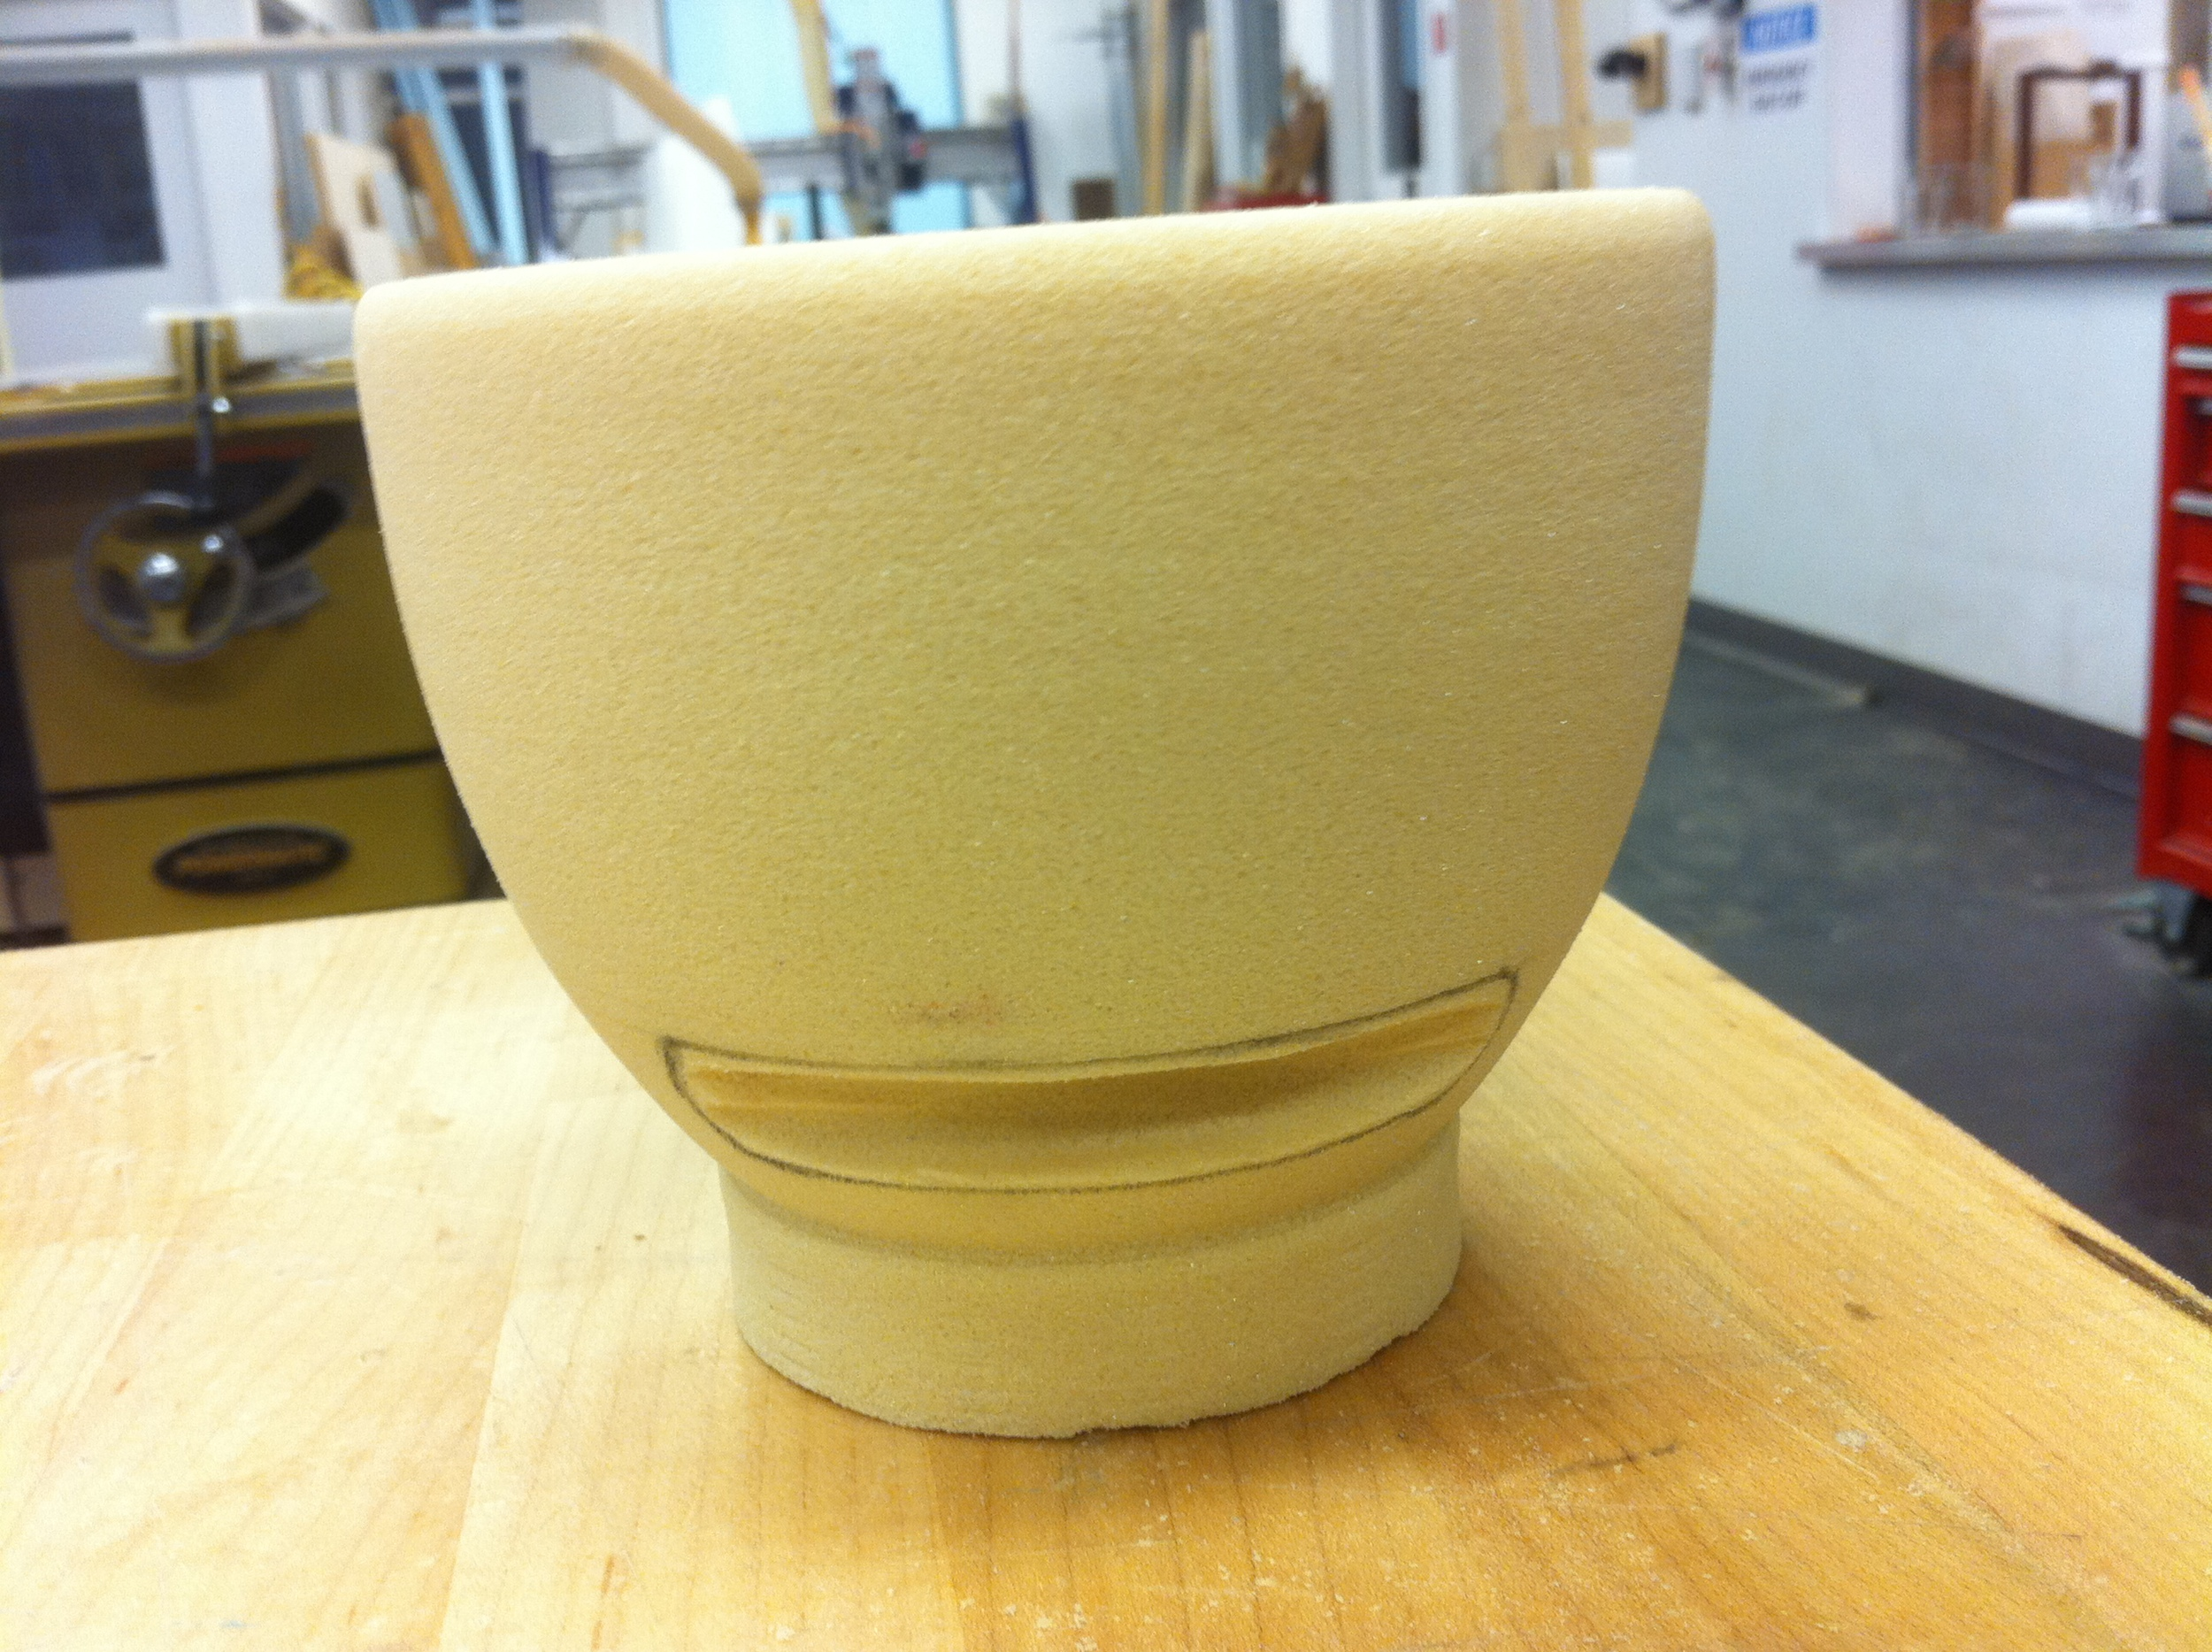 I lathed and carved the bowl form from a high density polyurethane foam.